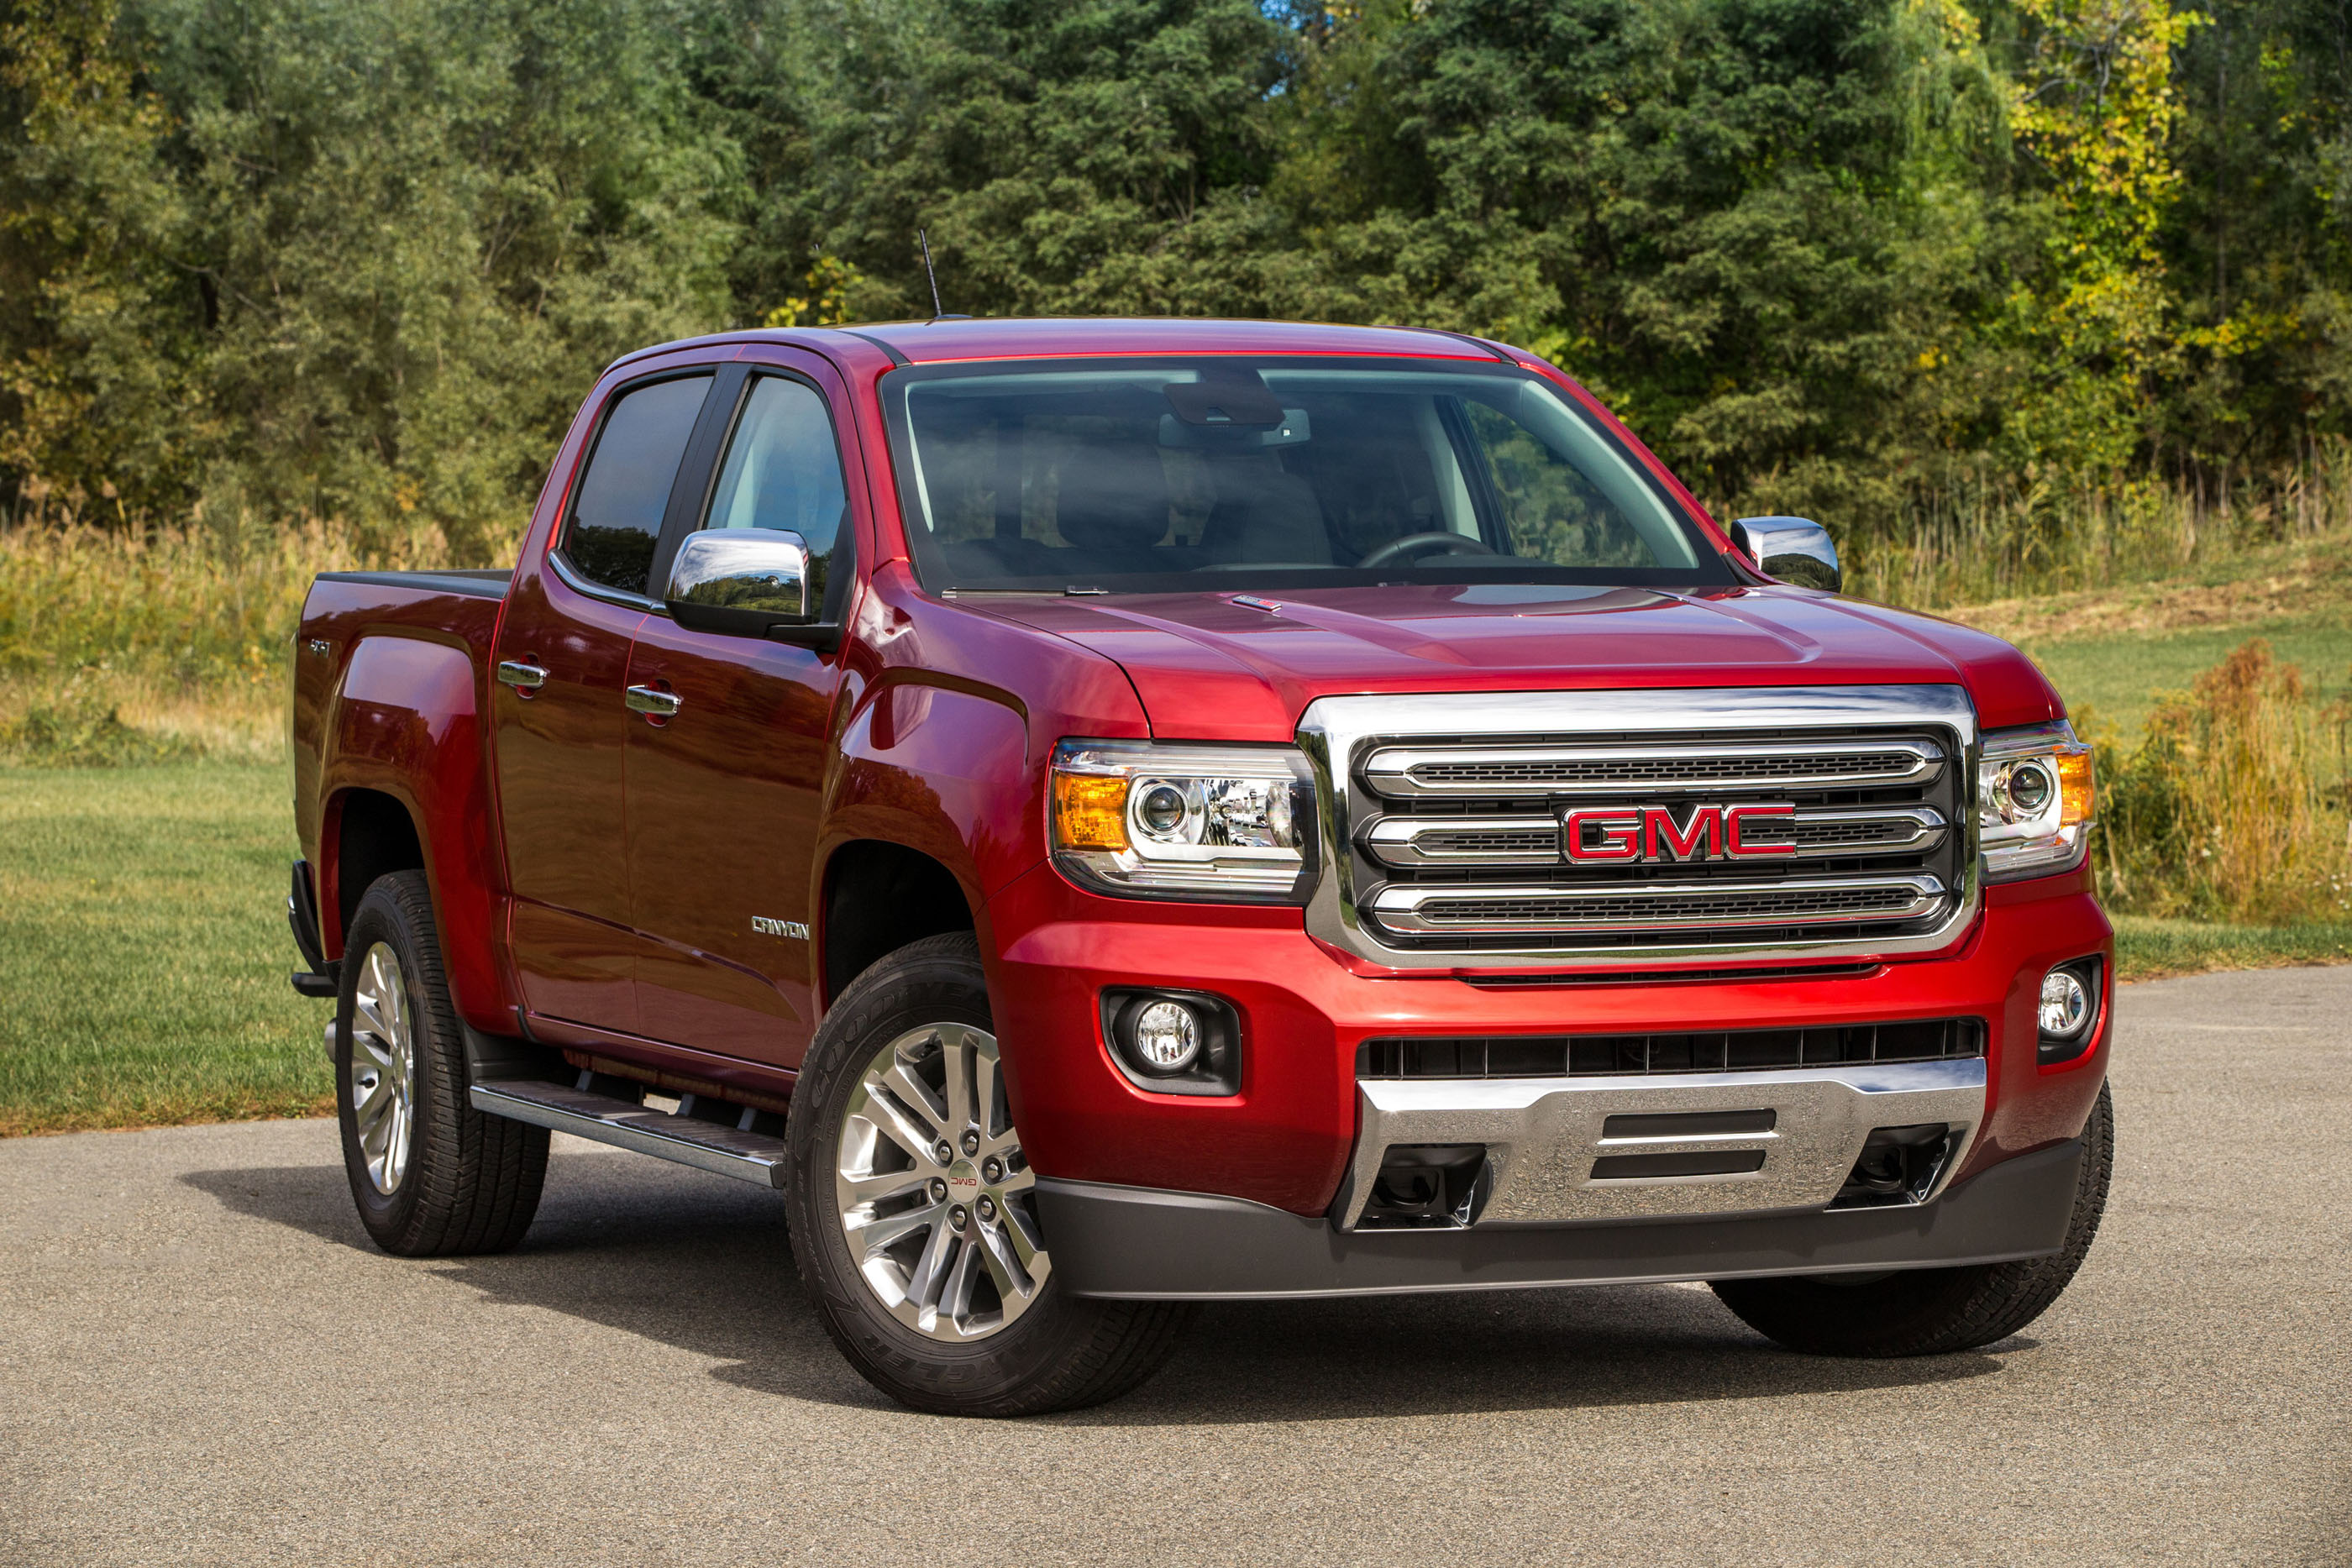 2017 gmc canyon safety review and crash test ratings the for Gmc motor city colorado springs